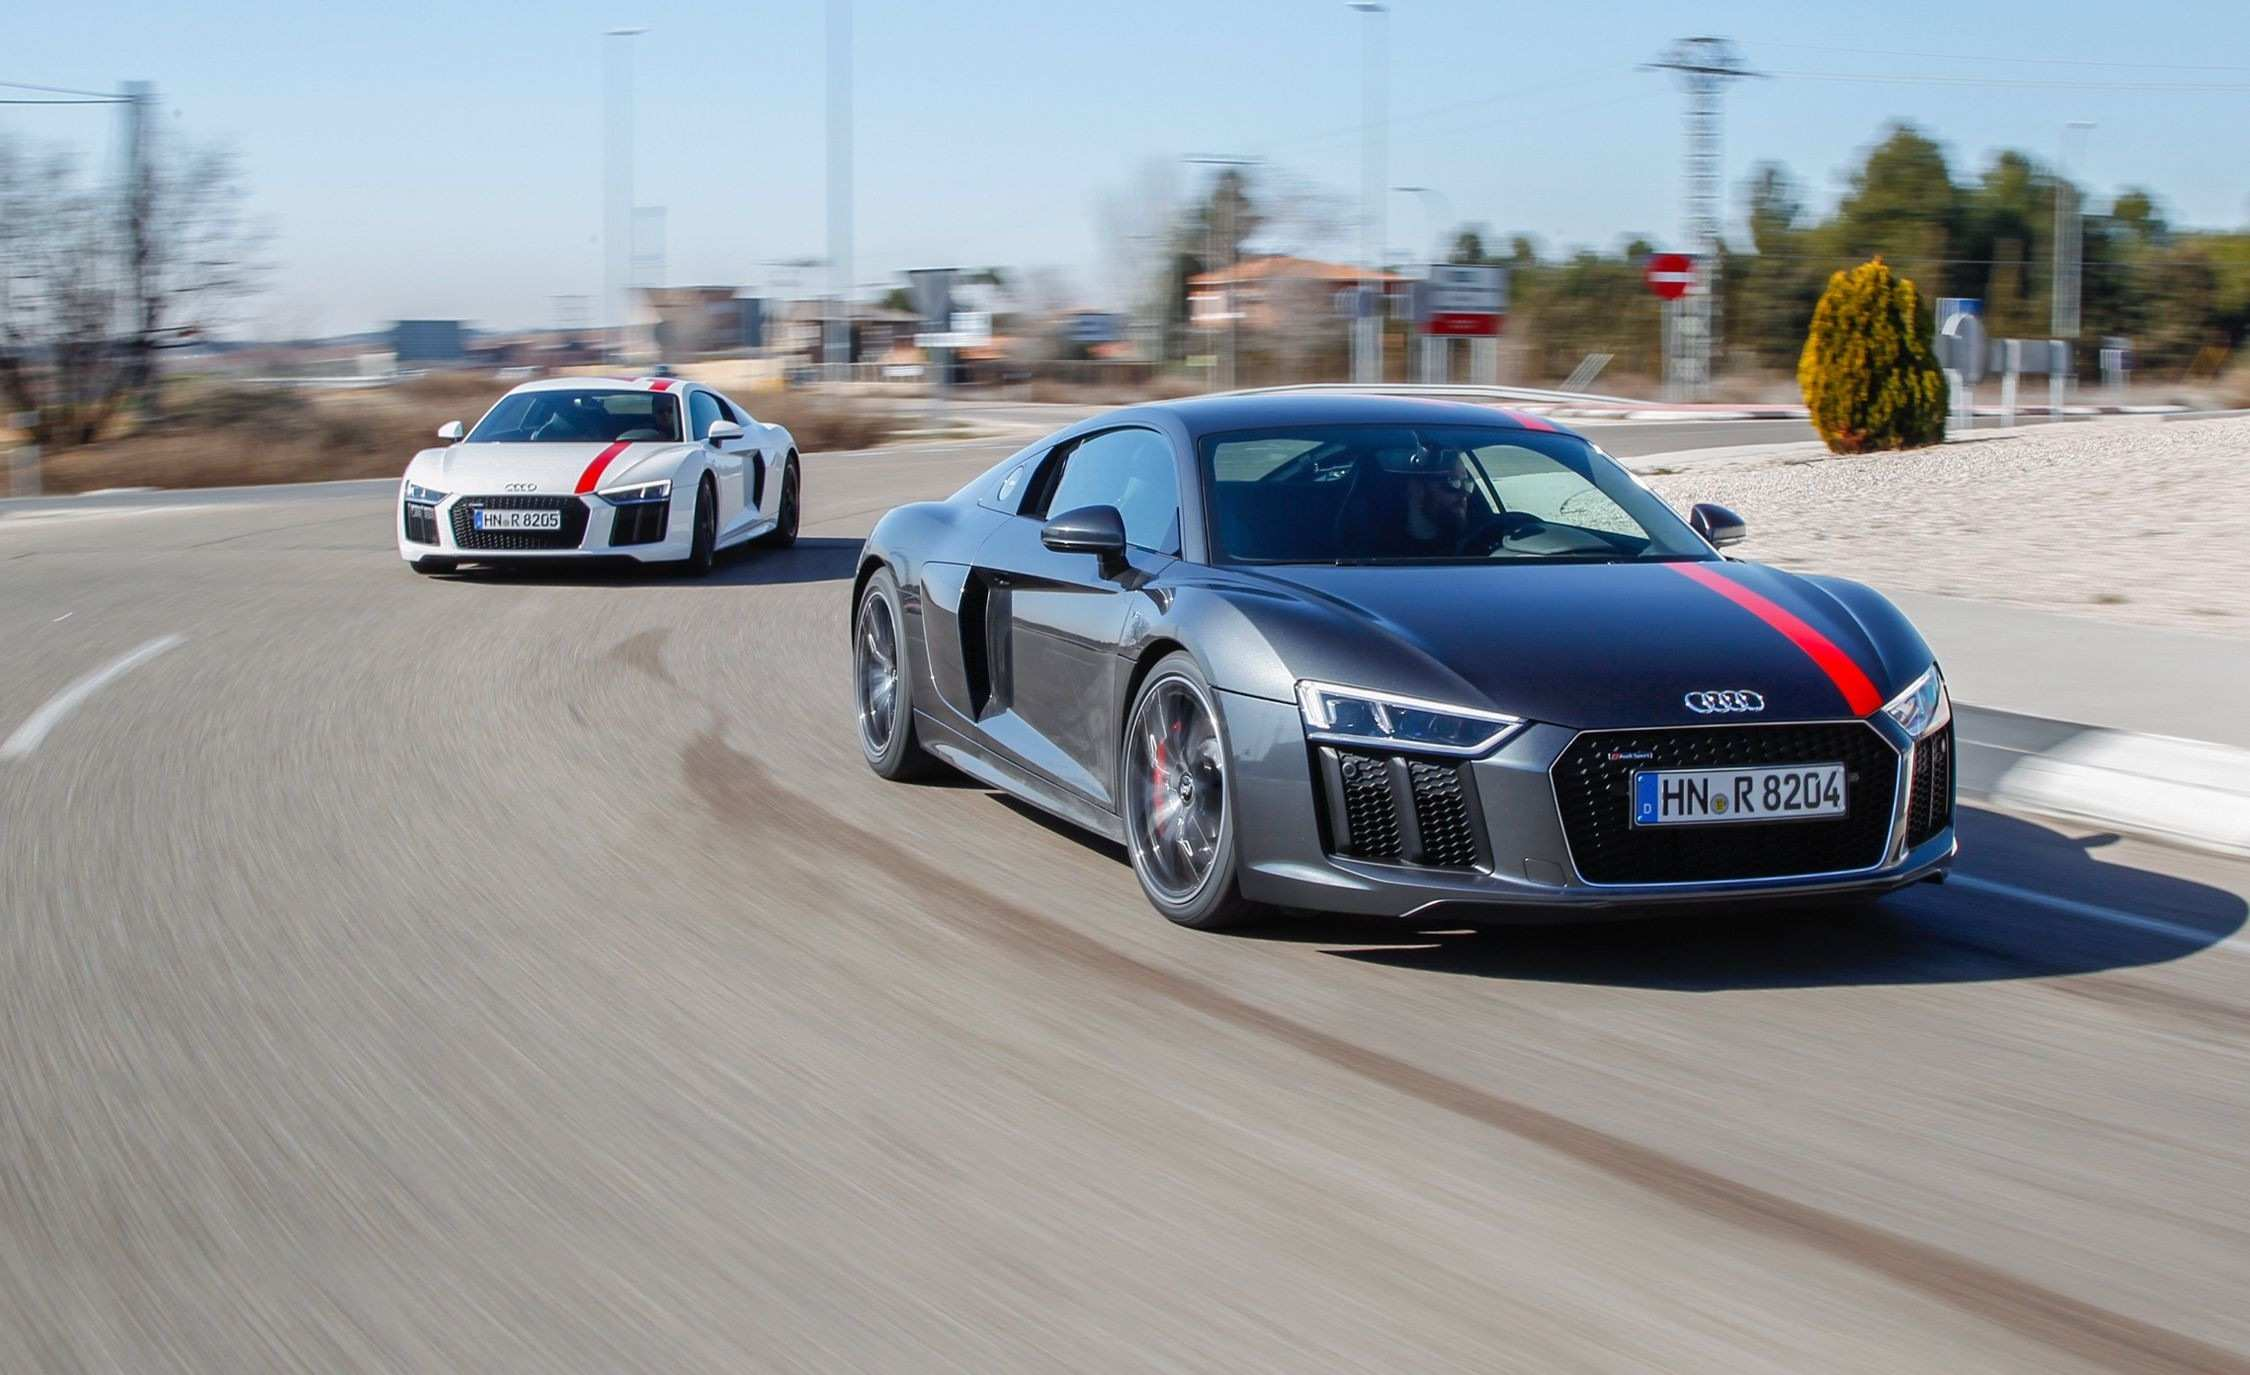 35 Best 2019 Audi R8 LMXs Ratings